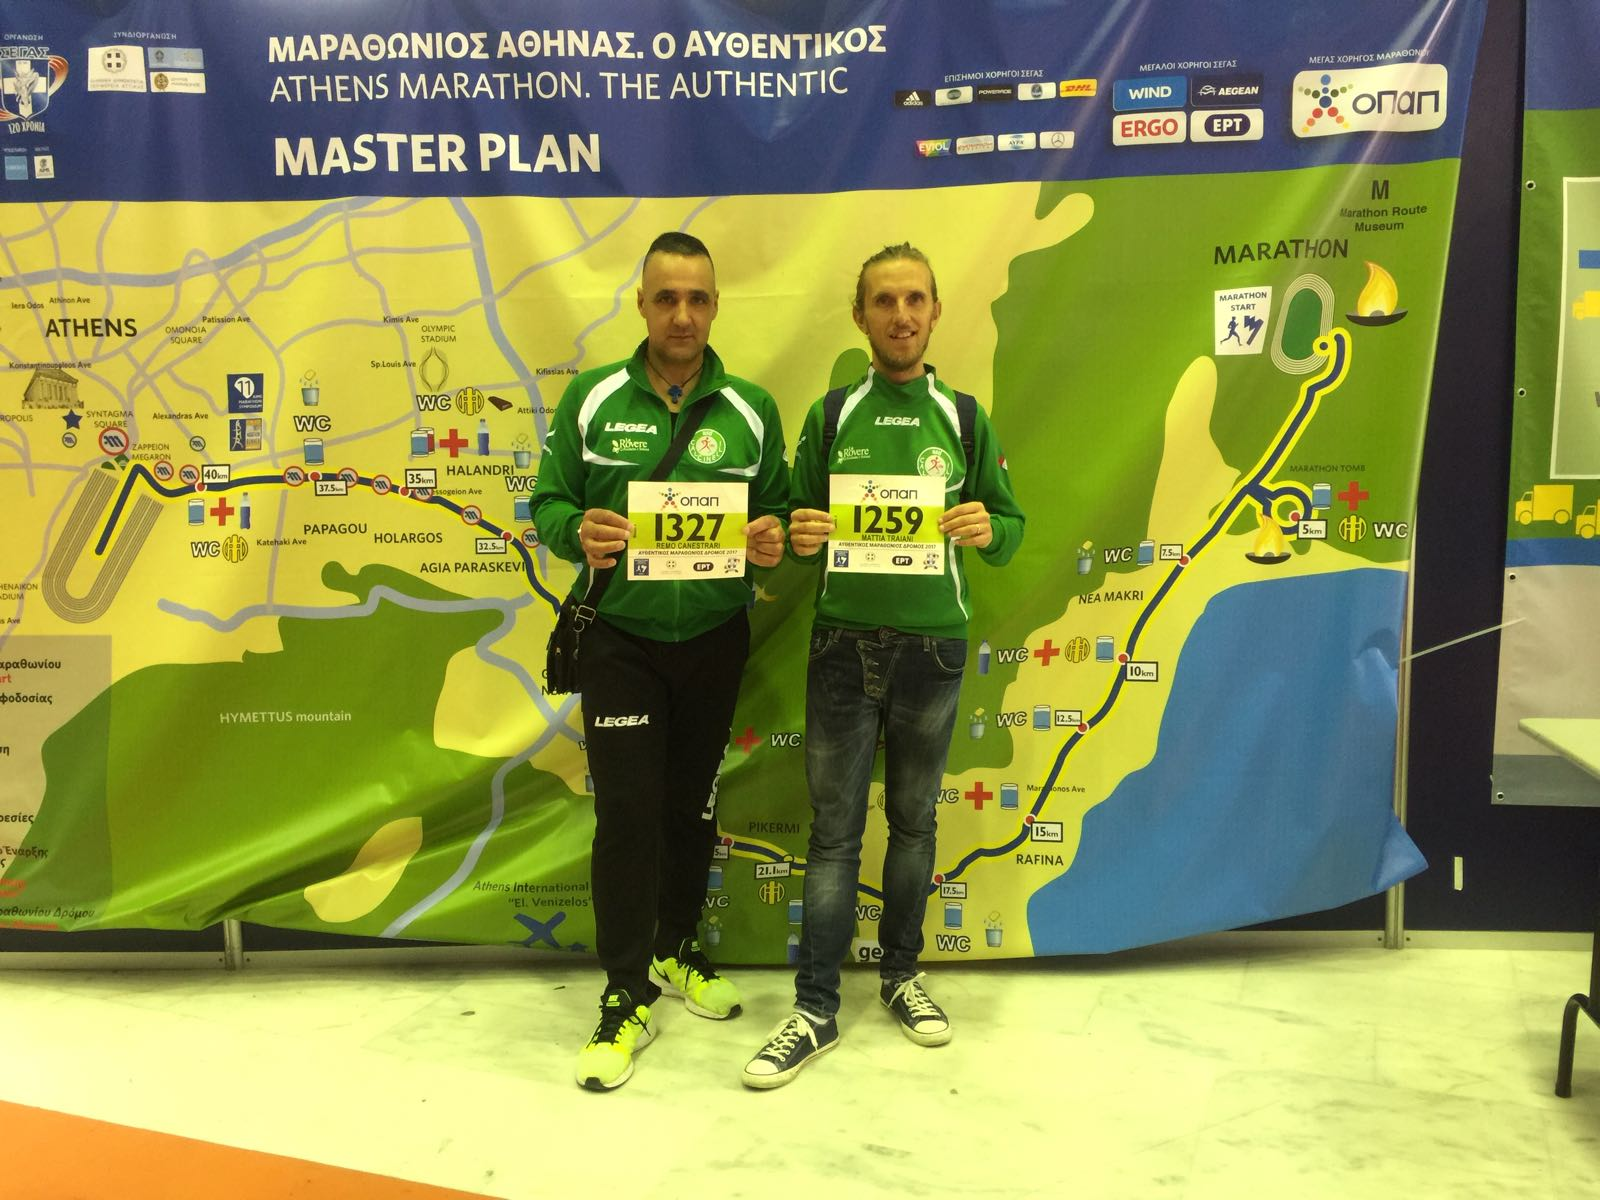 maratonadiatene2017